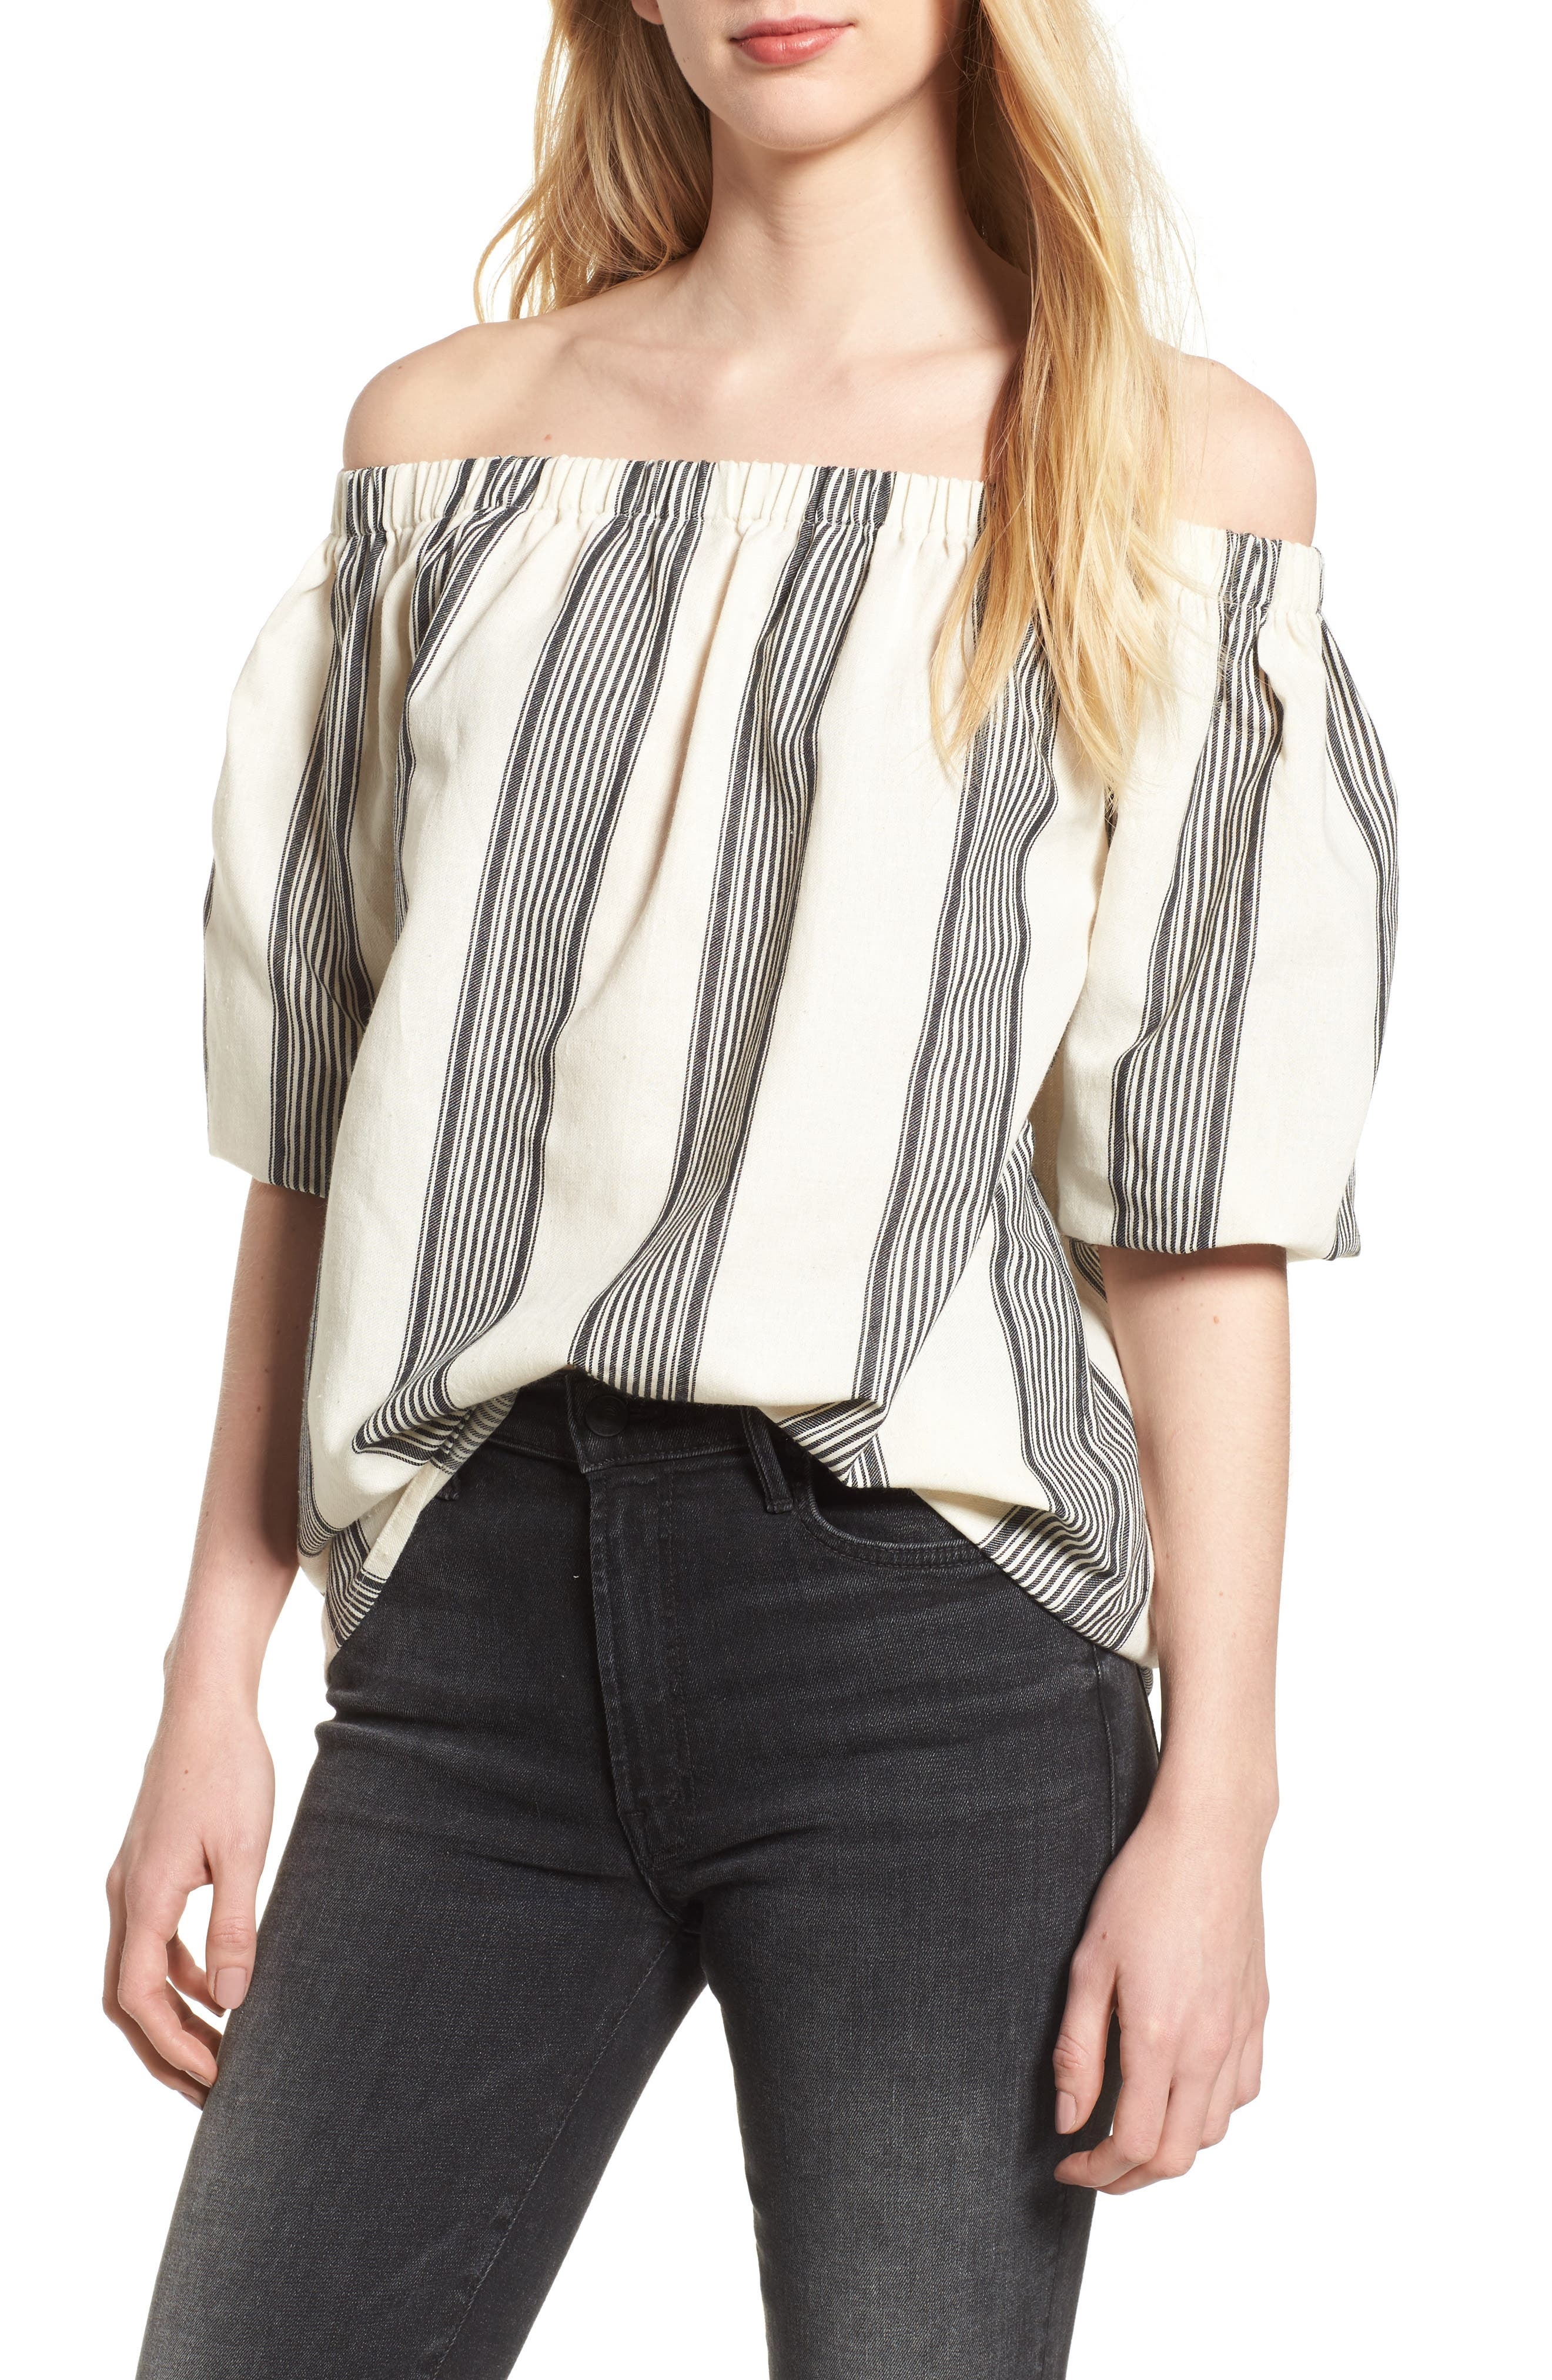 Bishop + Young Karlie Off the Shoulder Top,                         Main,                         color, Grey Stripe